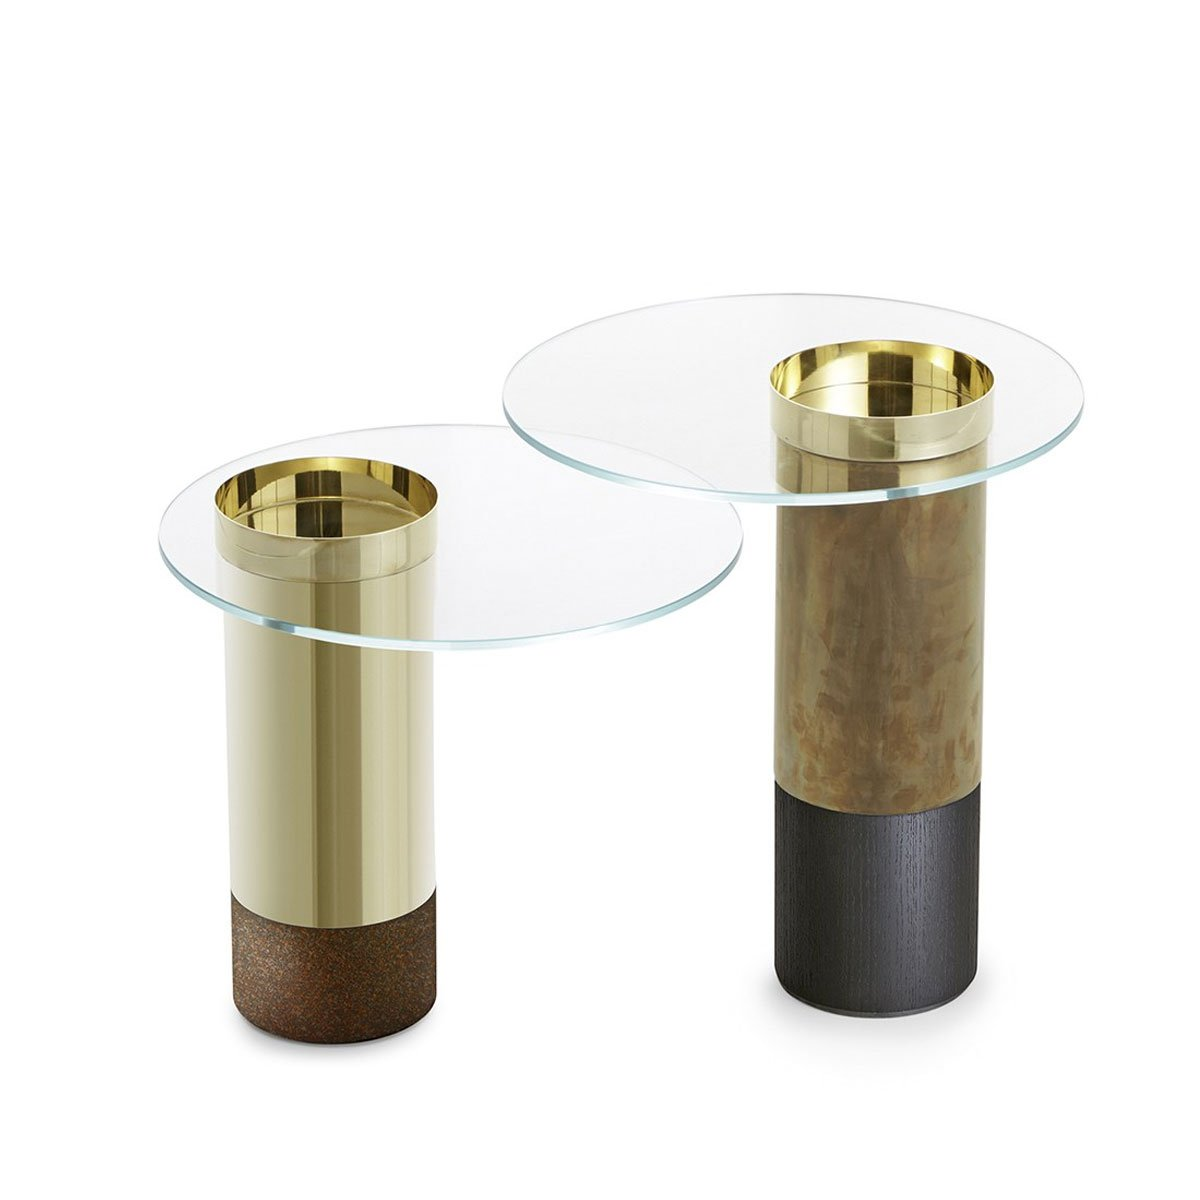 Haumea Glass And Metal Coffee Table By Gallotti Radice Klarity Glass Furniture